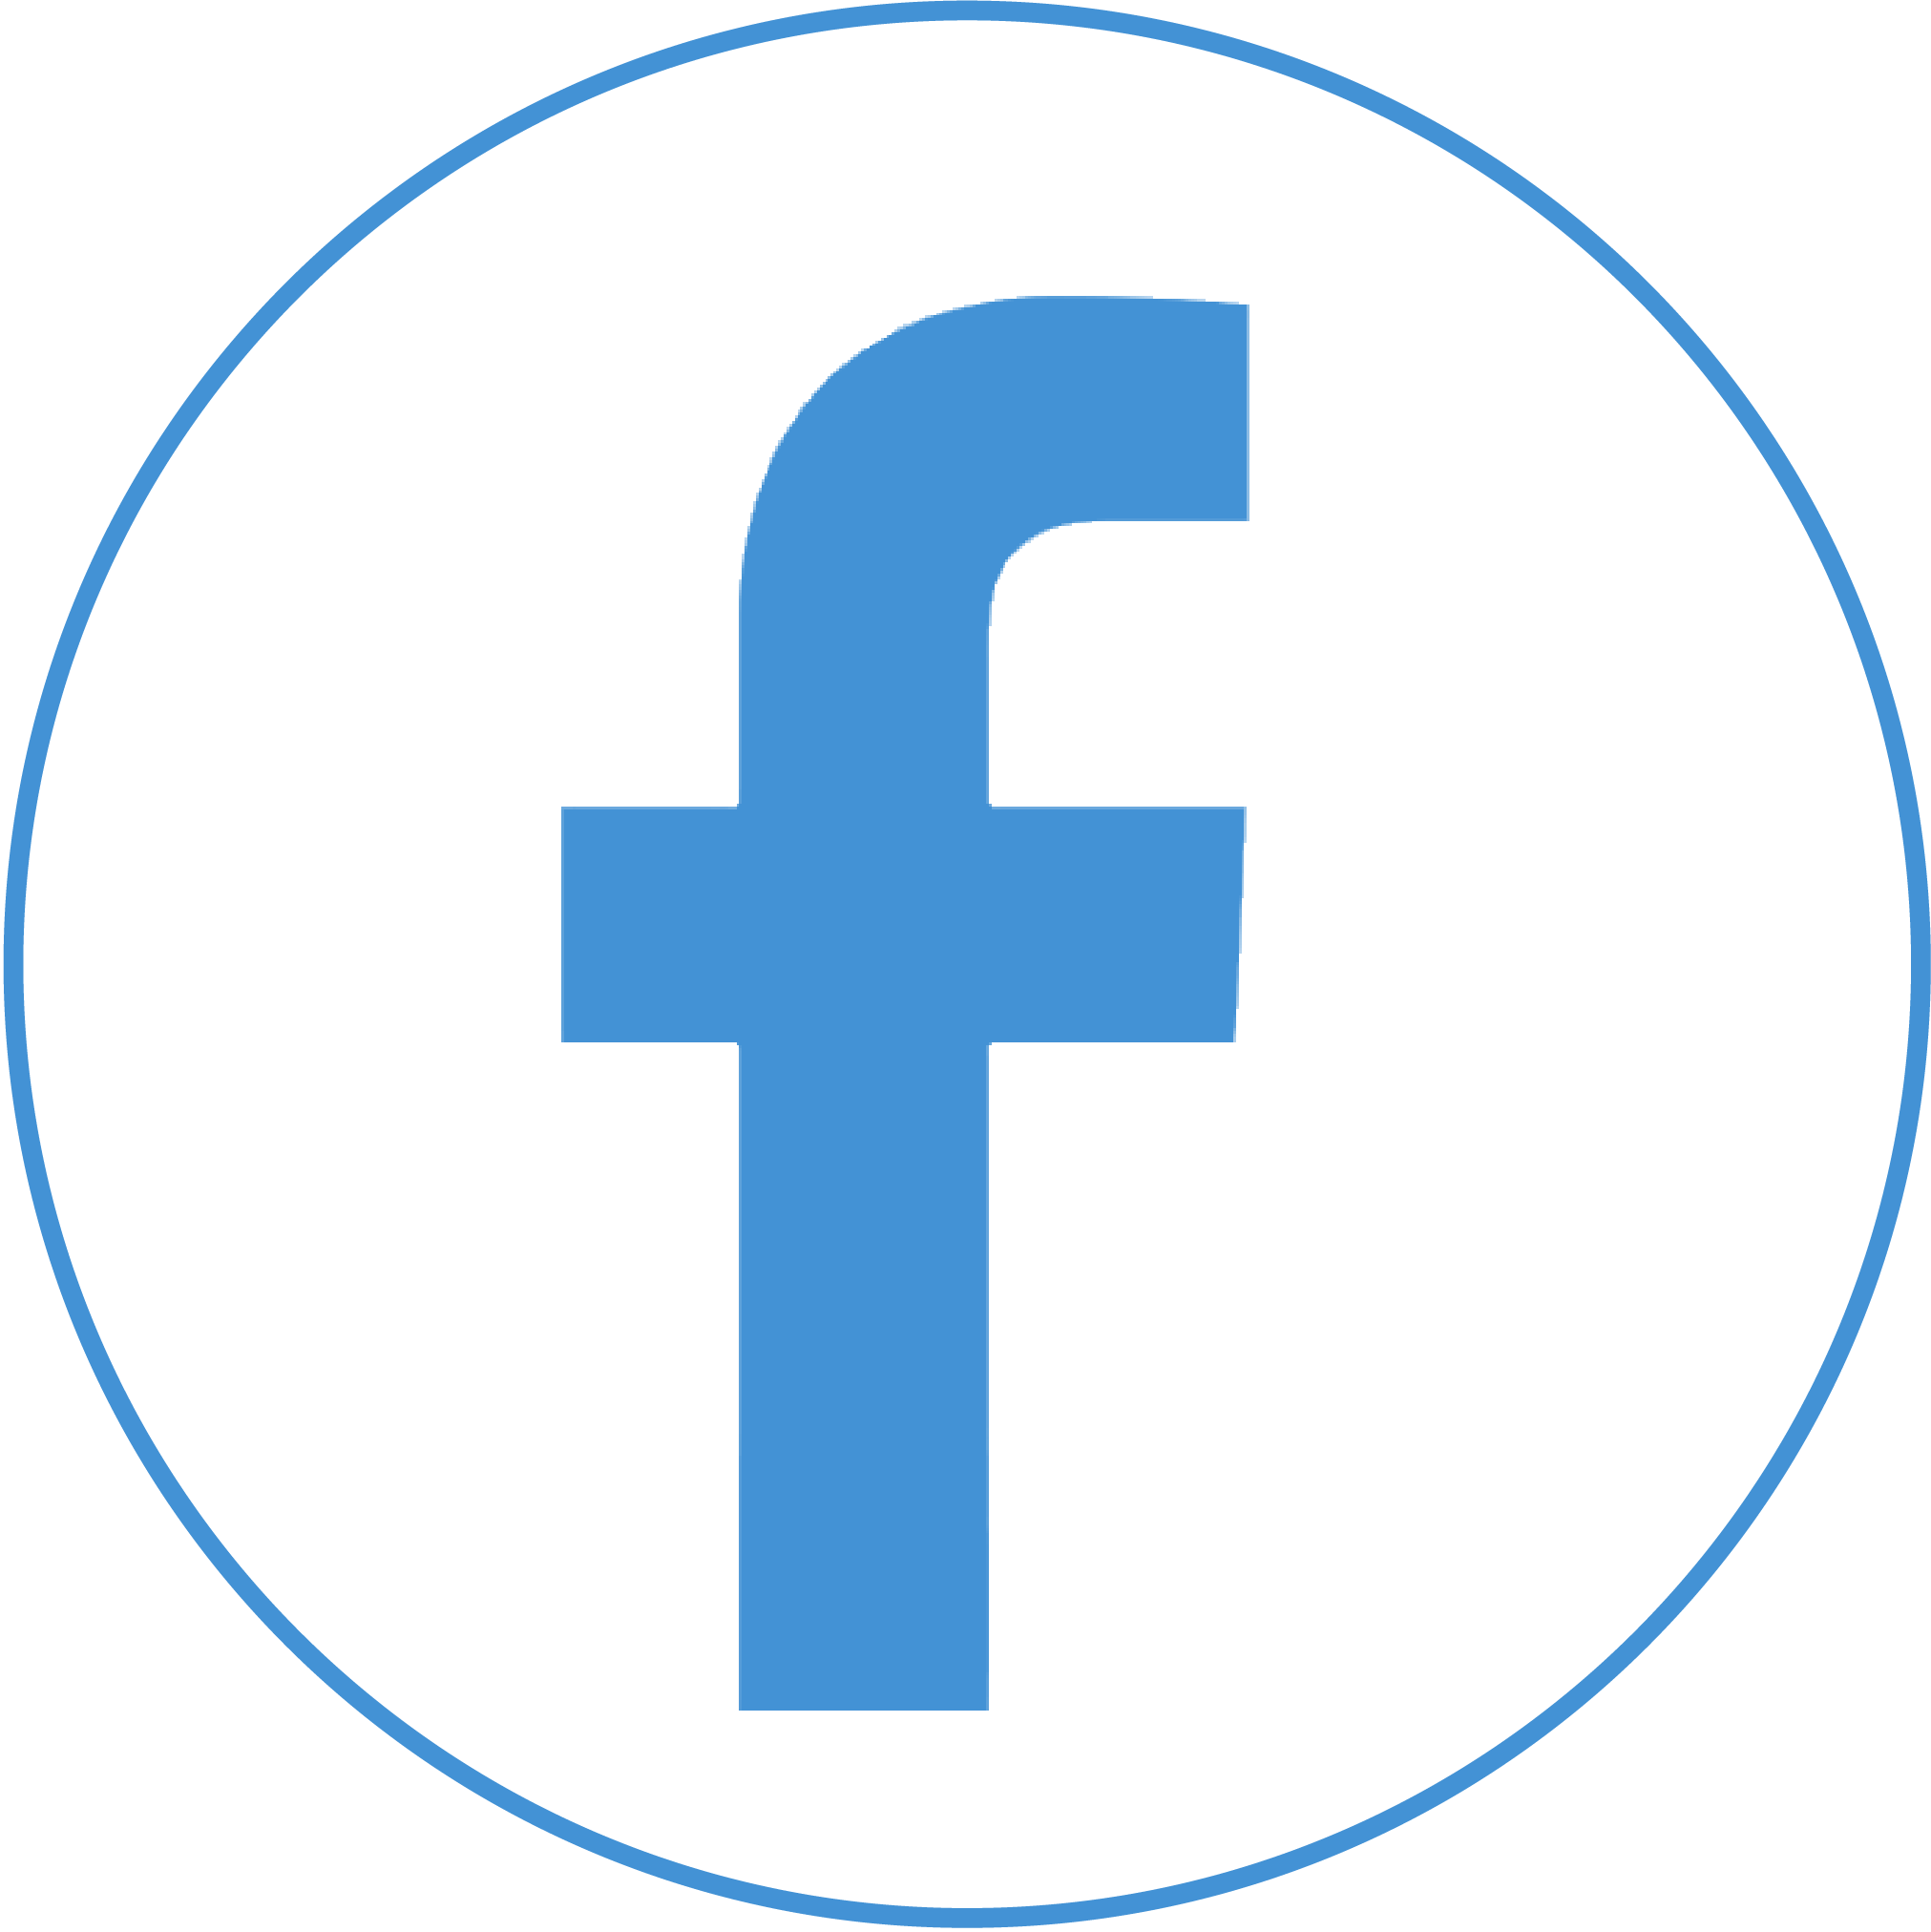 Free Facebook Transparent Icon, Download Free Clip Art, Free.